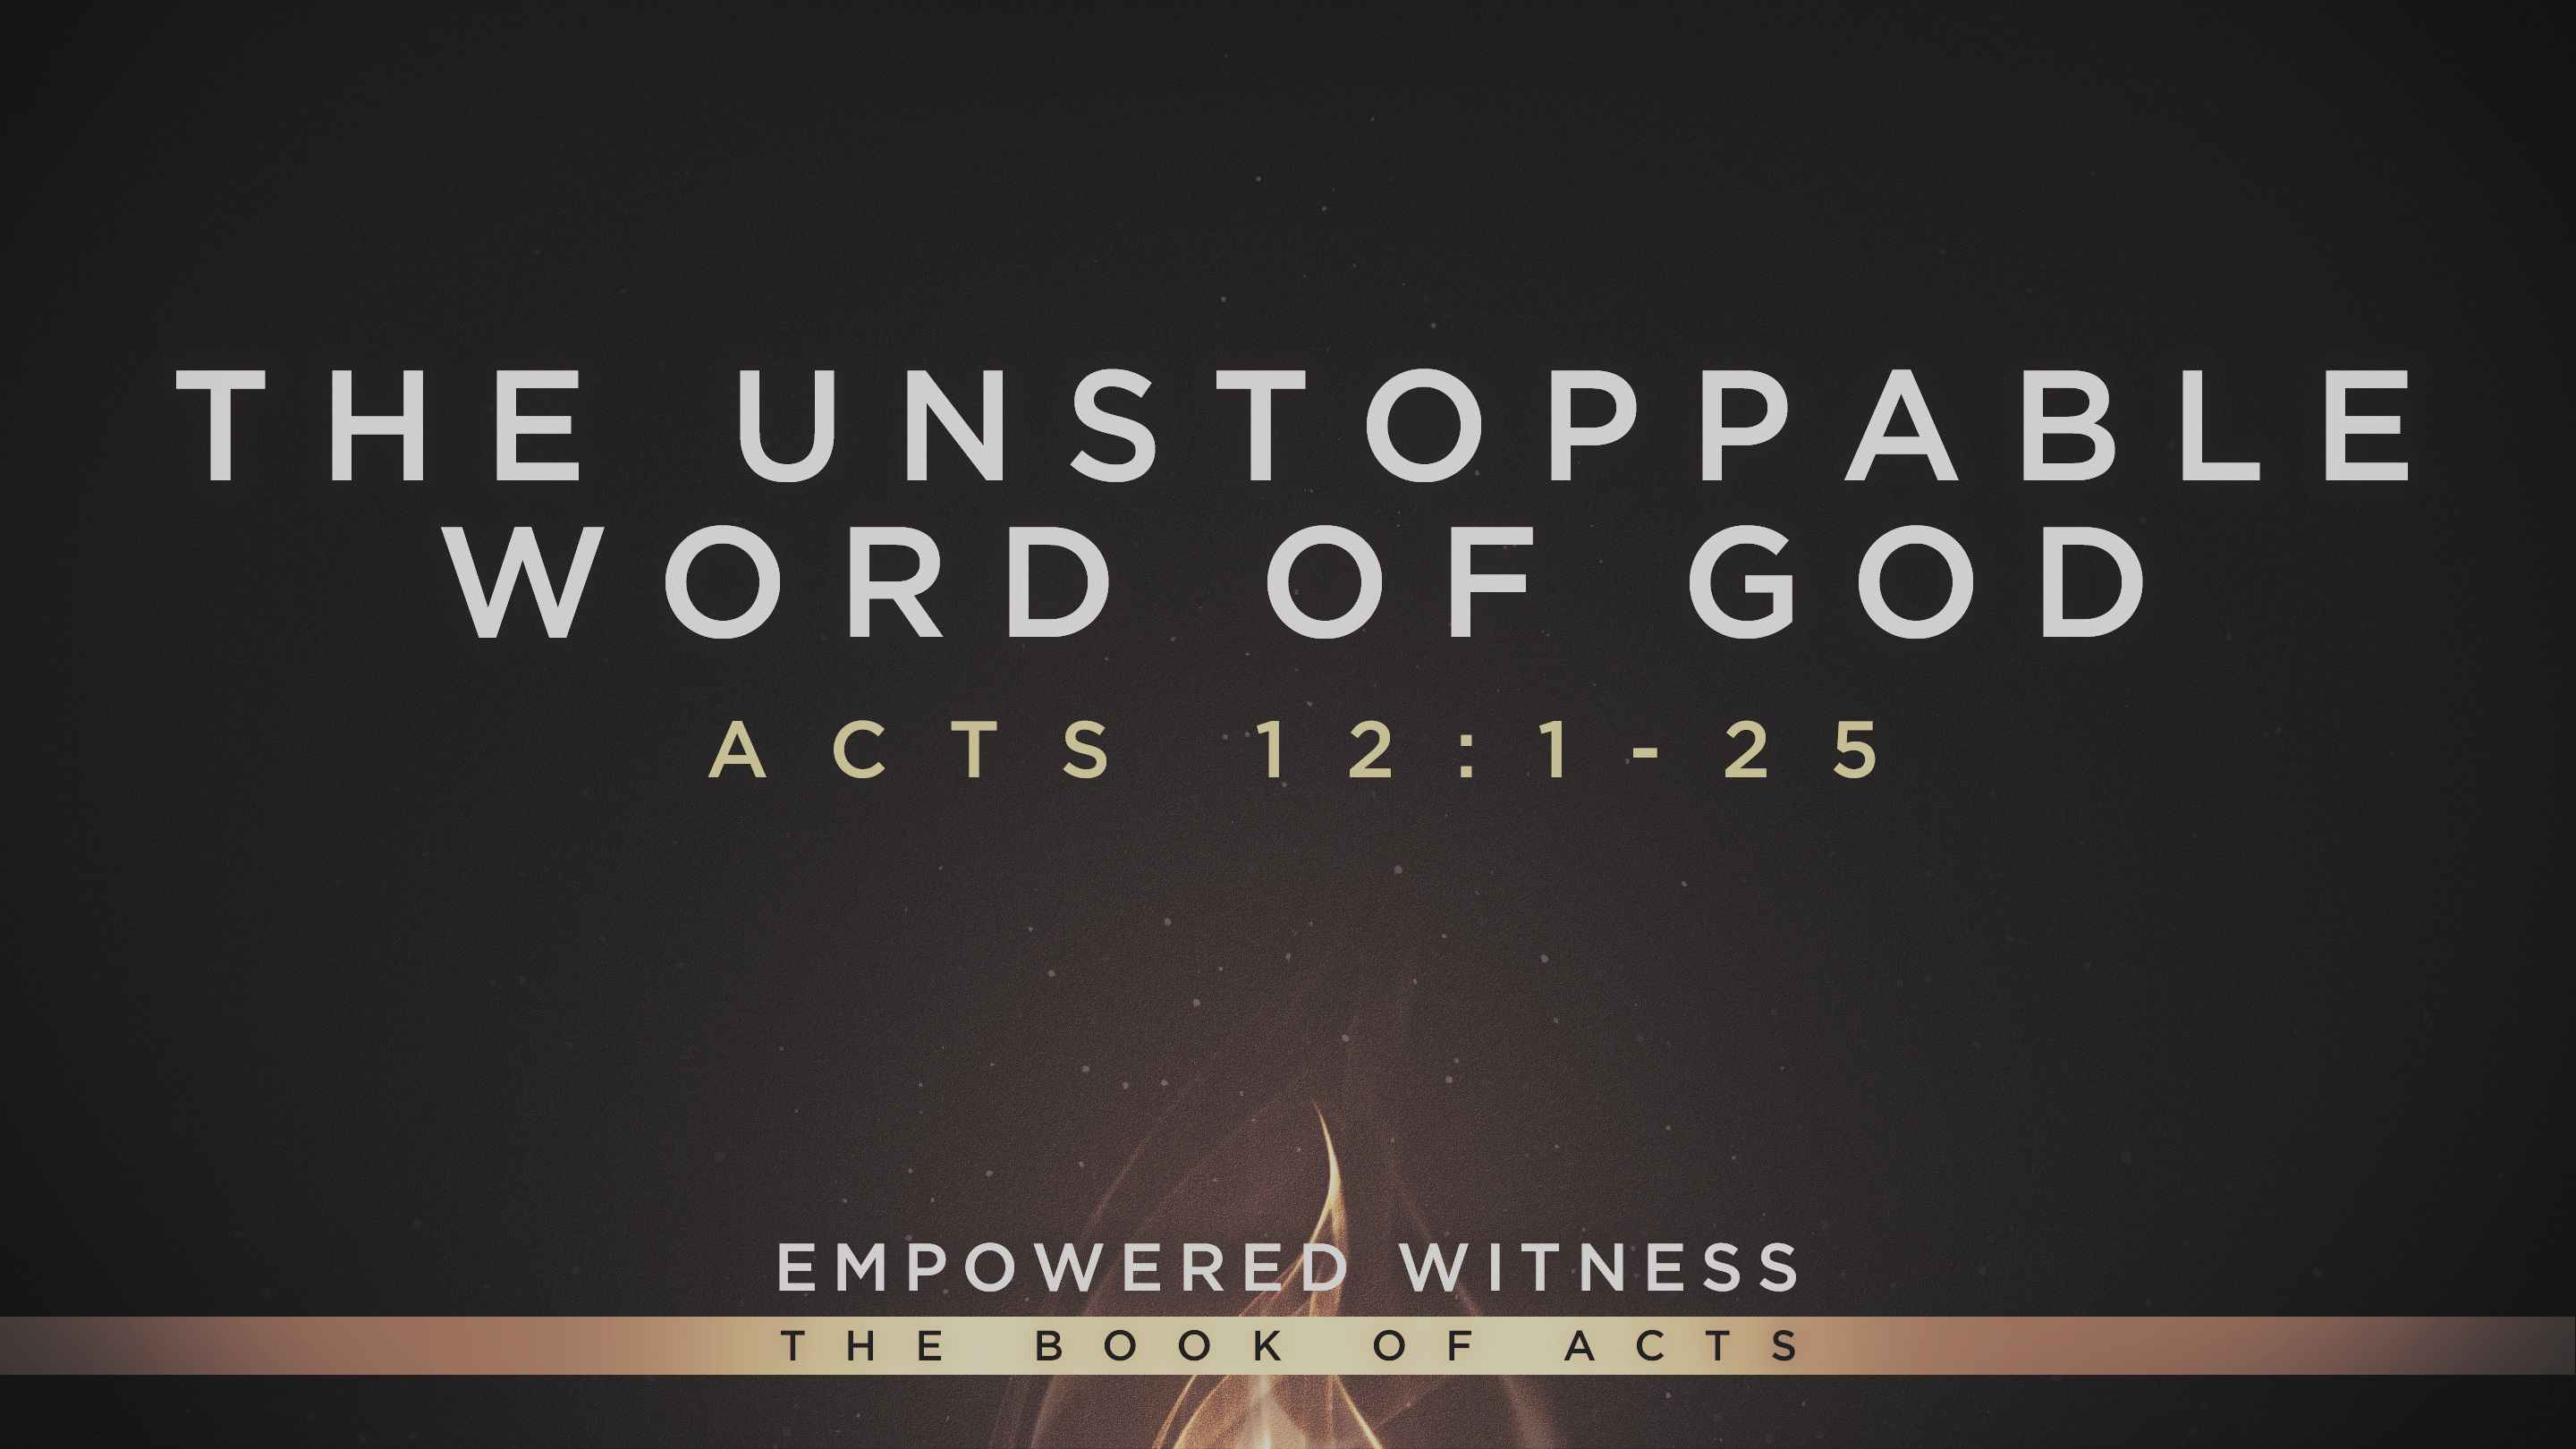 The Unstoppable Word of God